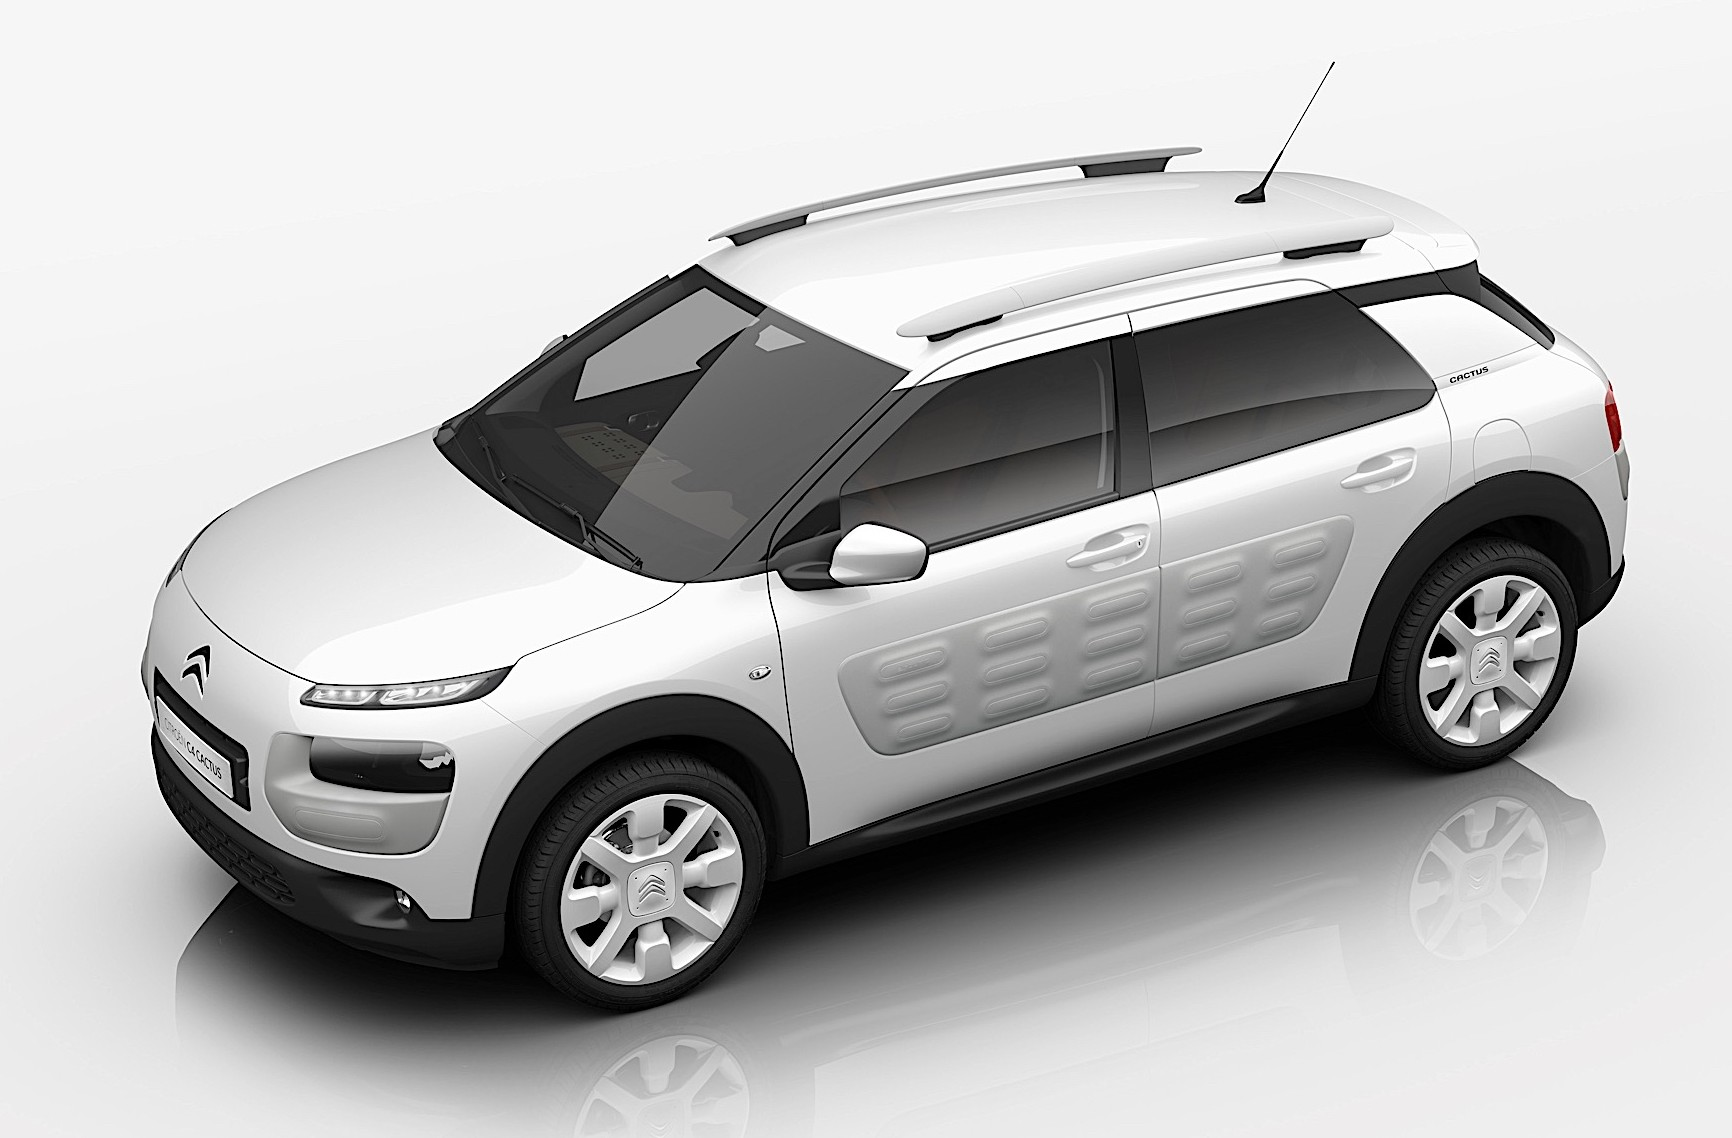 citroen c4 cactus crash tested gets 4 euro ncap stars. Black Bedroom Furniture Sets. Home Design Ideas